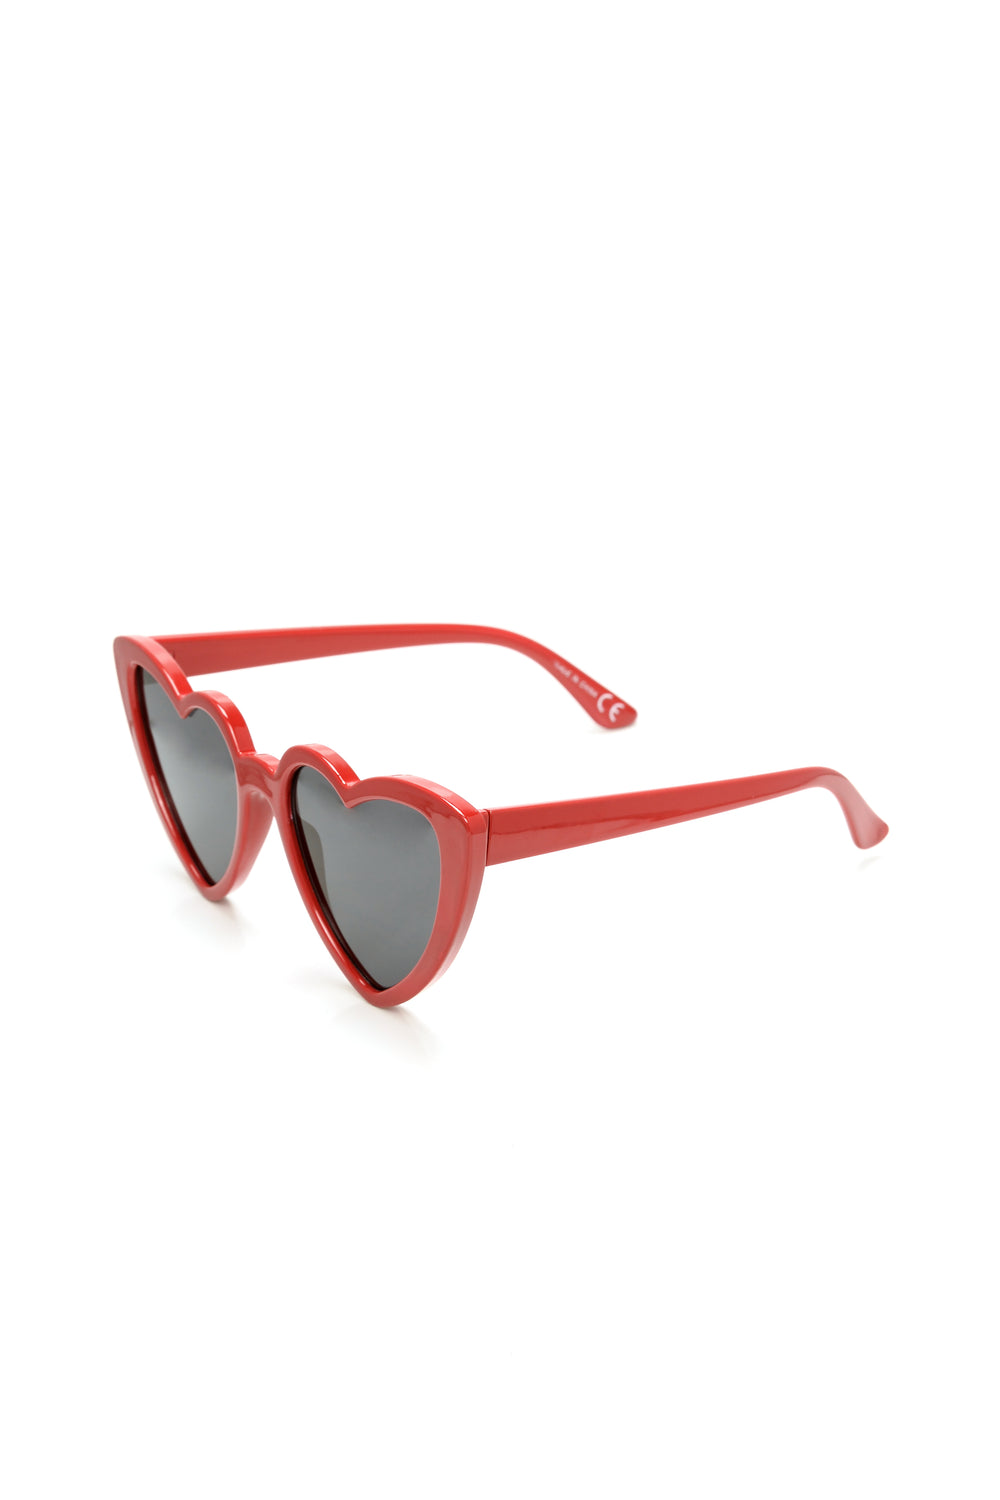 Got My Heart Eyes Sunglasses - Red